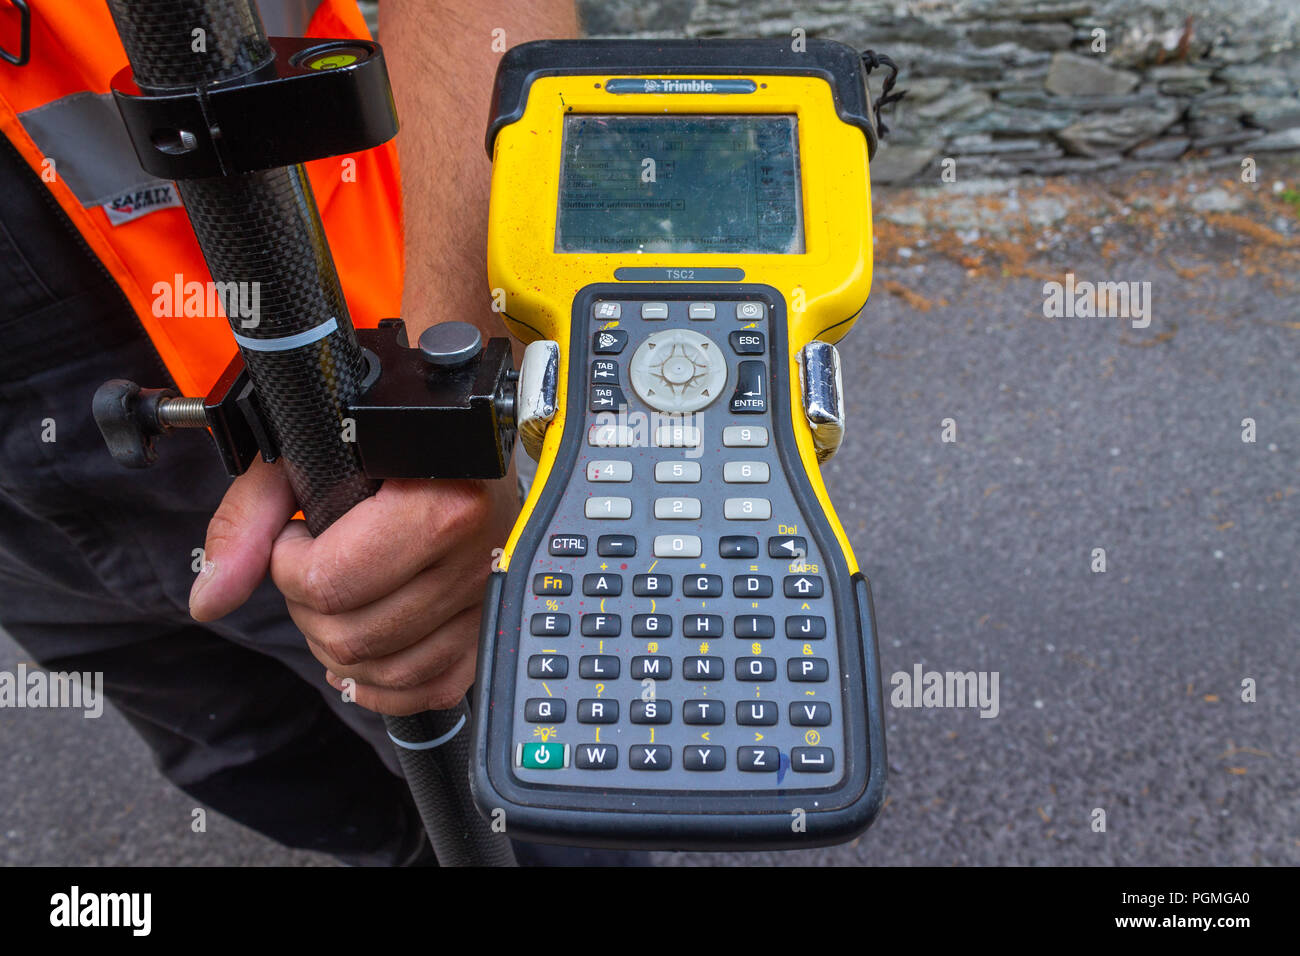 land surveyor holding a trimble global positioning system controller. - Stock Image